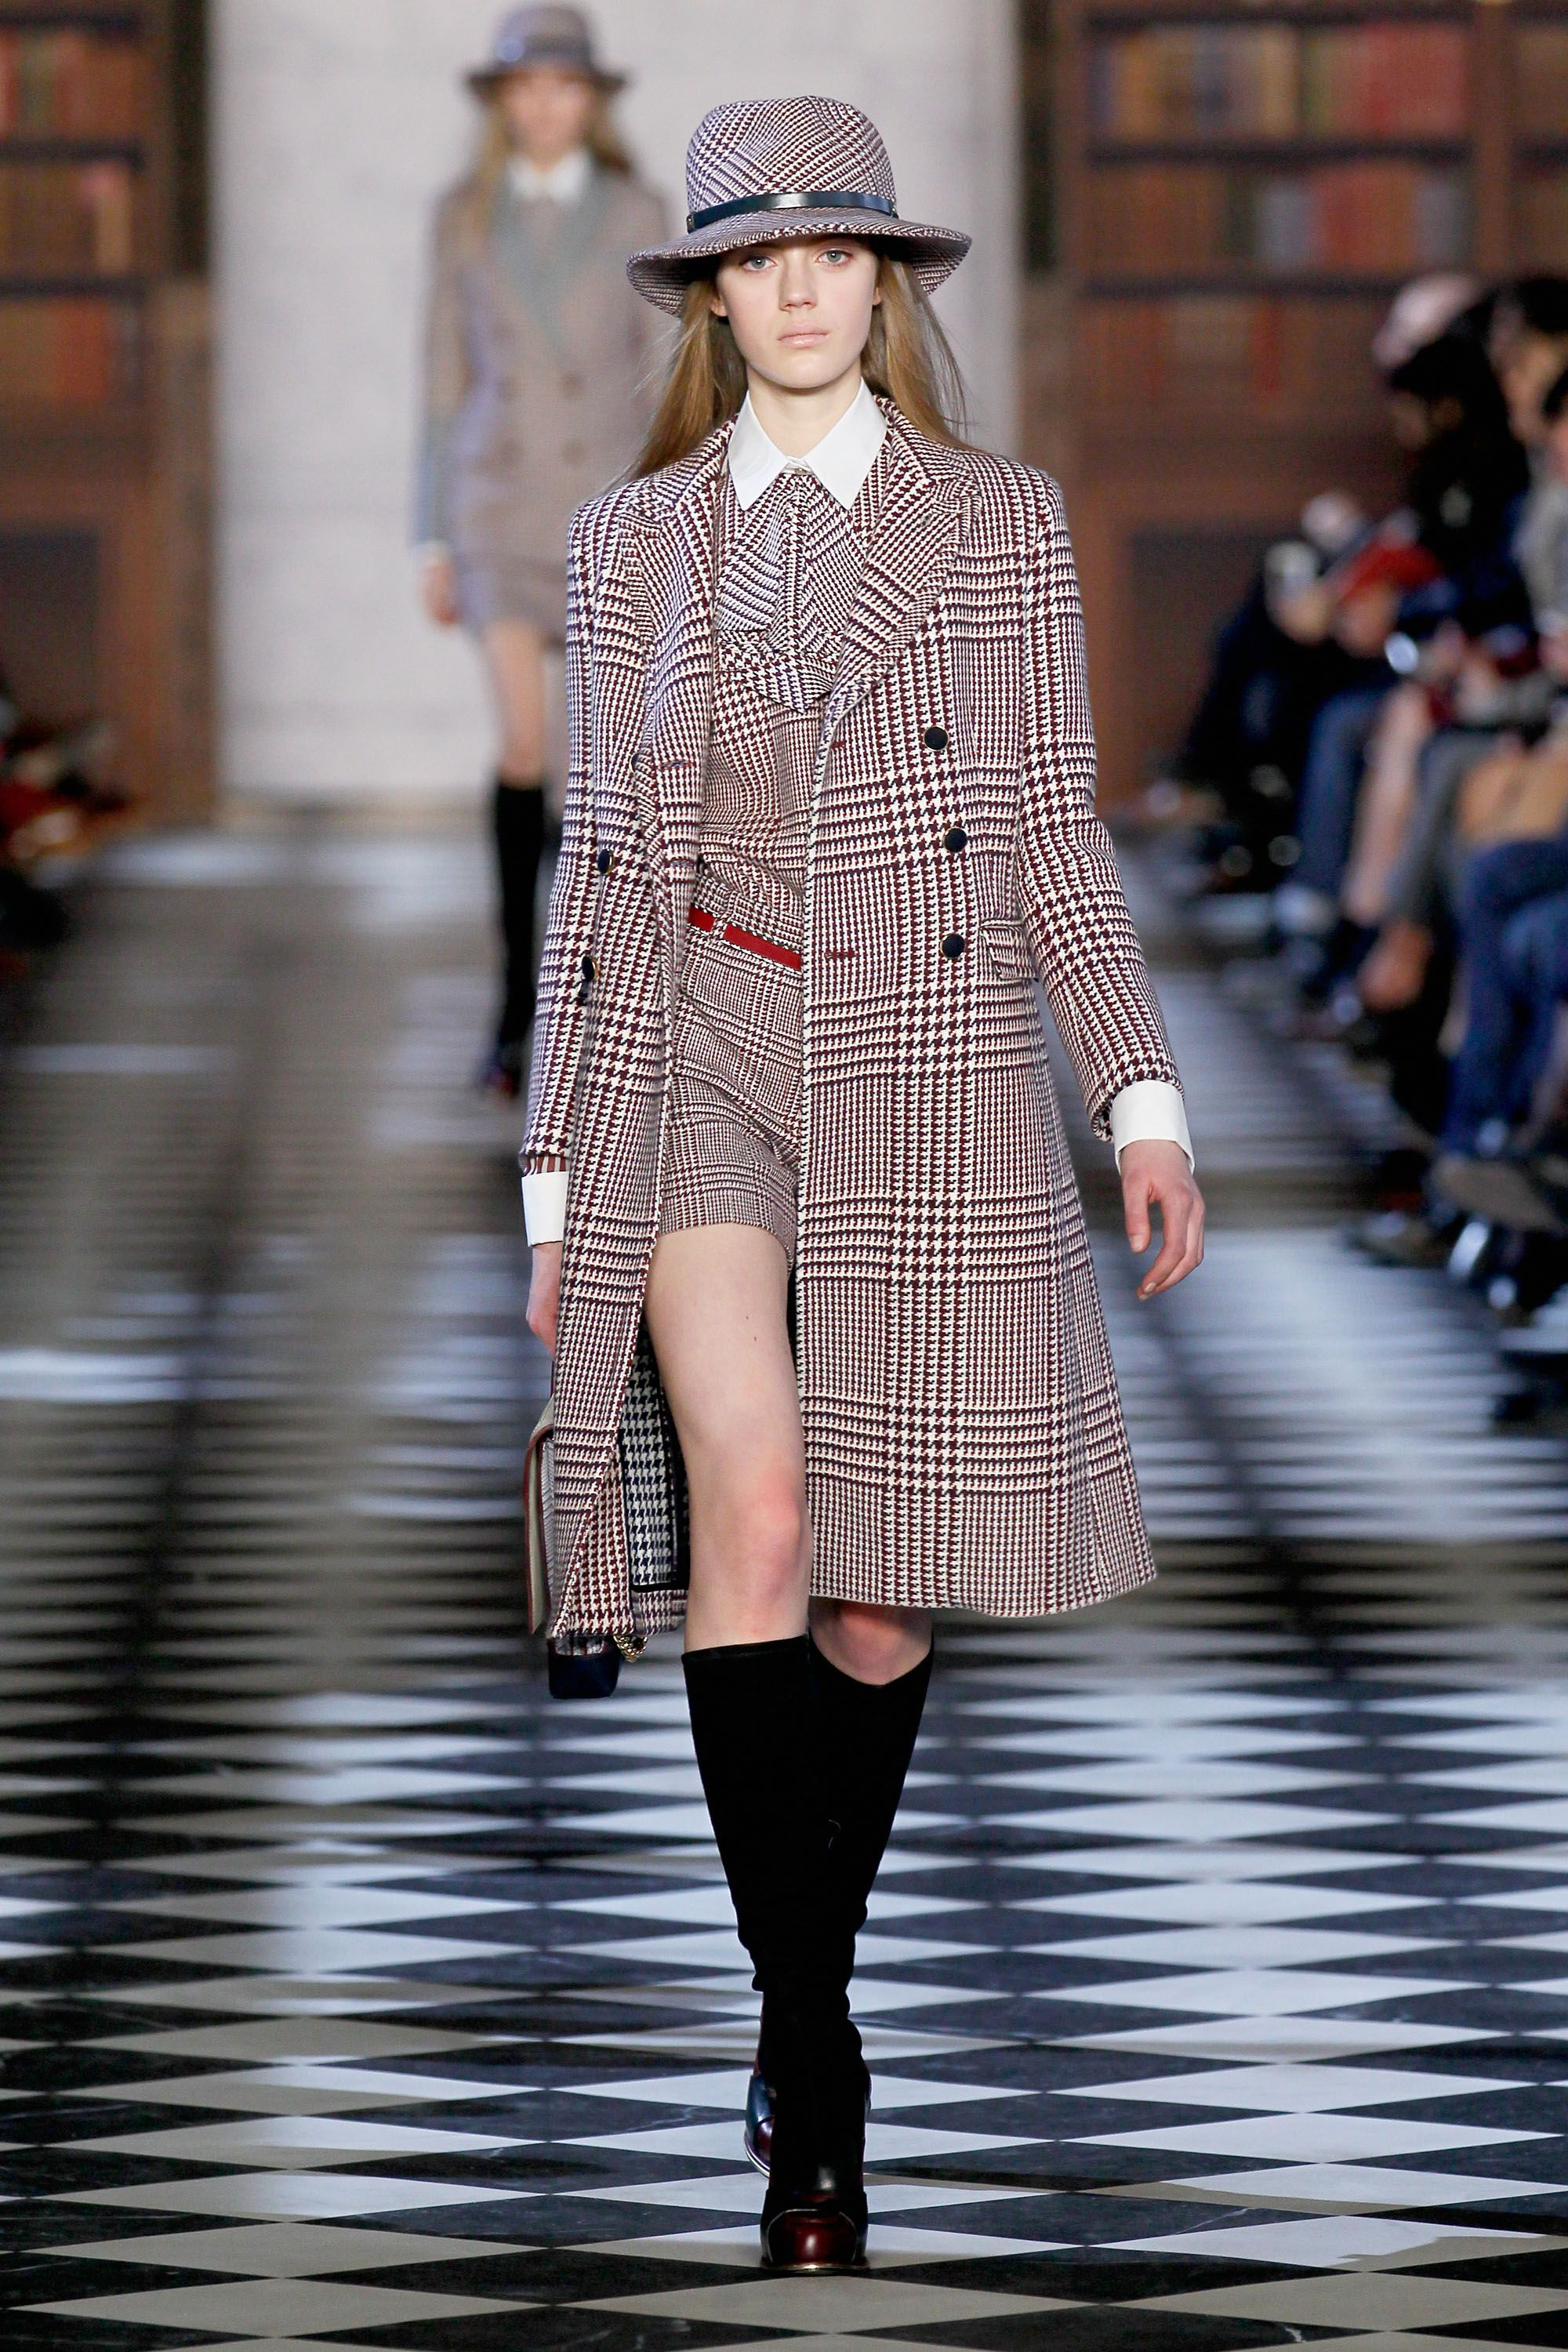 Tommy Hilfiger Women's Fall 2013 fashion show during Mercedes-Benz Fashion Week